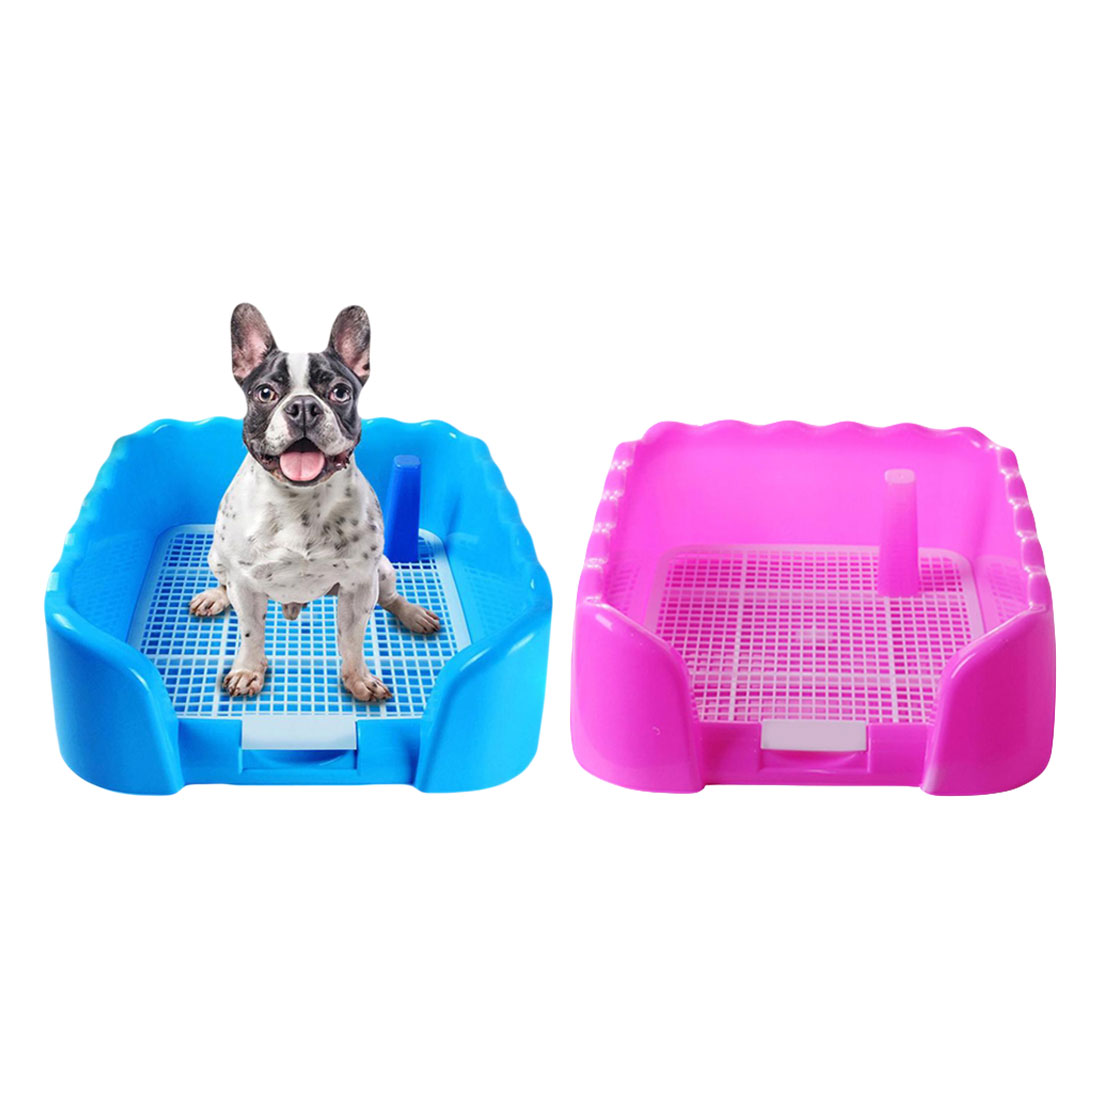 Portable Puppy Training Tray with Fence for Pet Dogs and Cats Potty and Pee Training Indoor 1